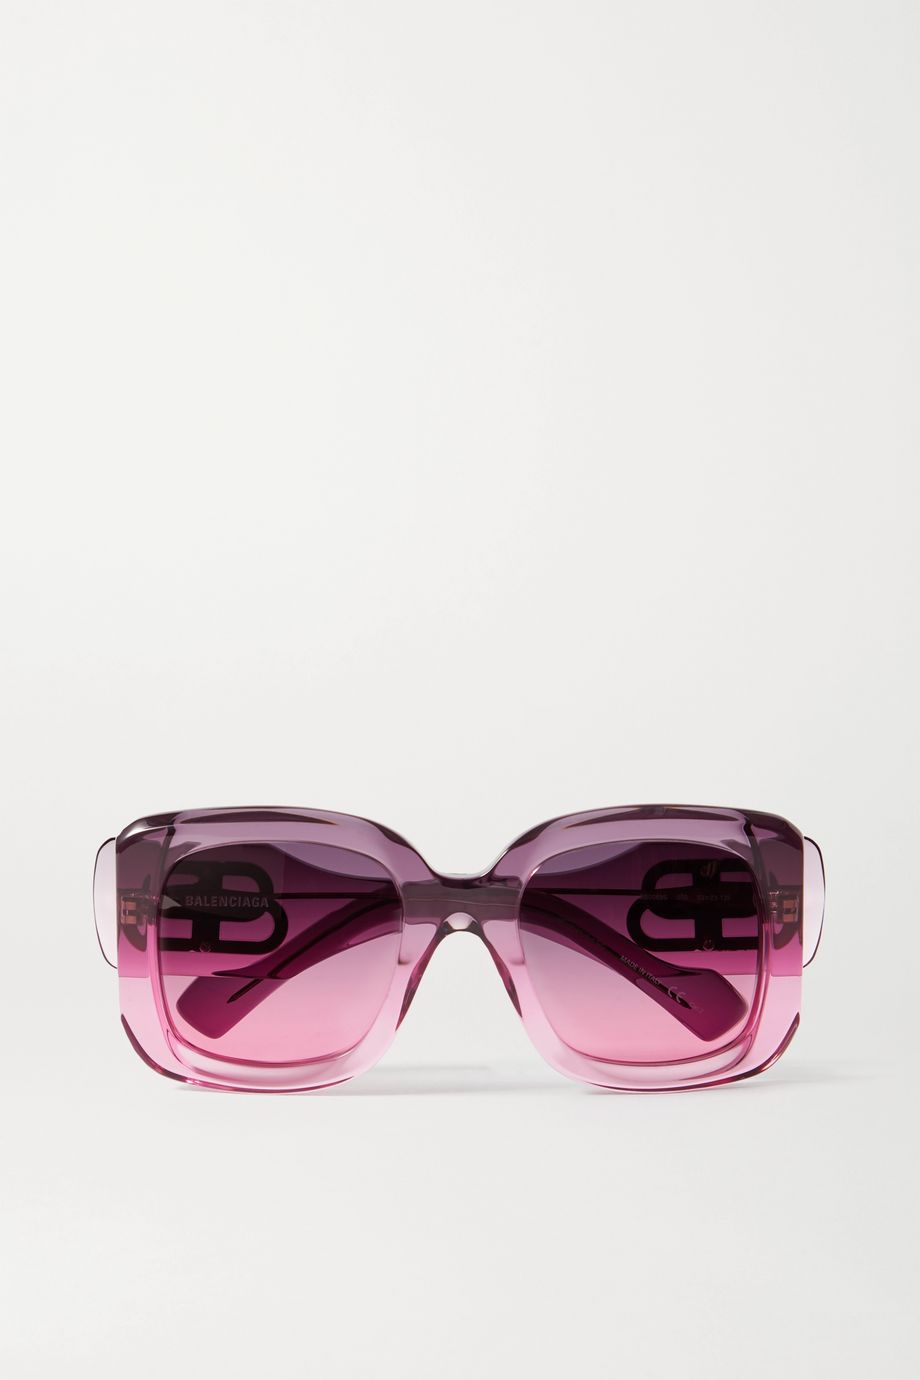 Balenciaga Paris oversized square-frame dégradé acetate sunglasses